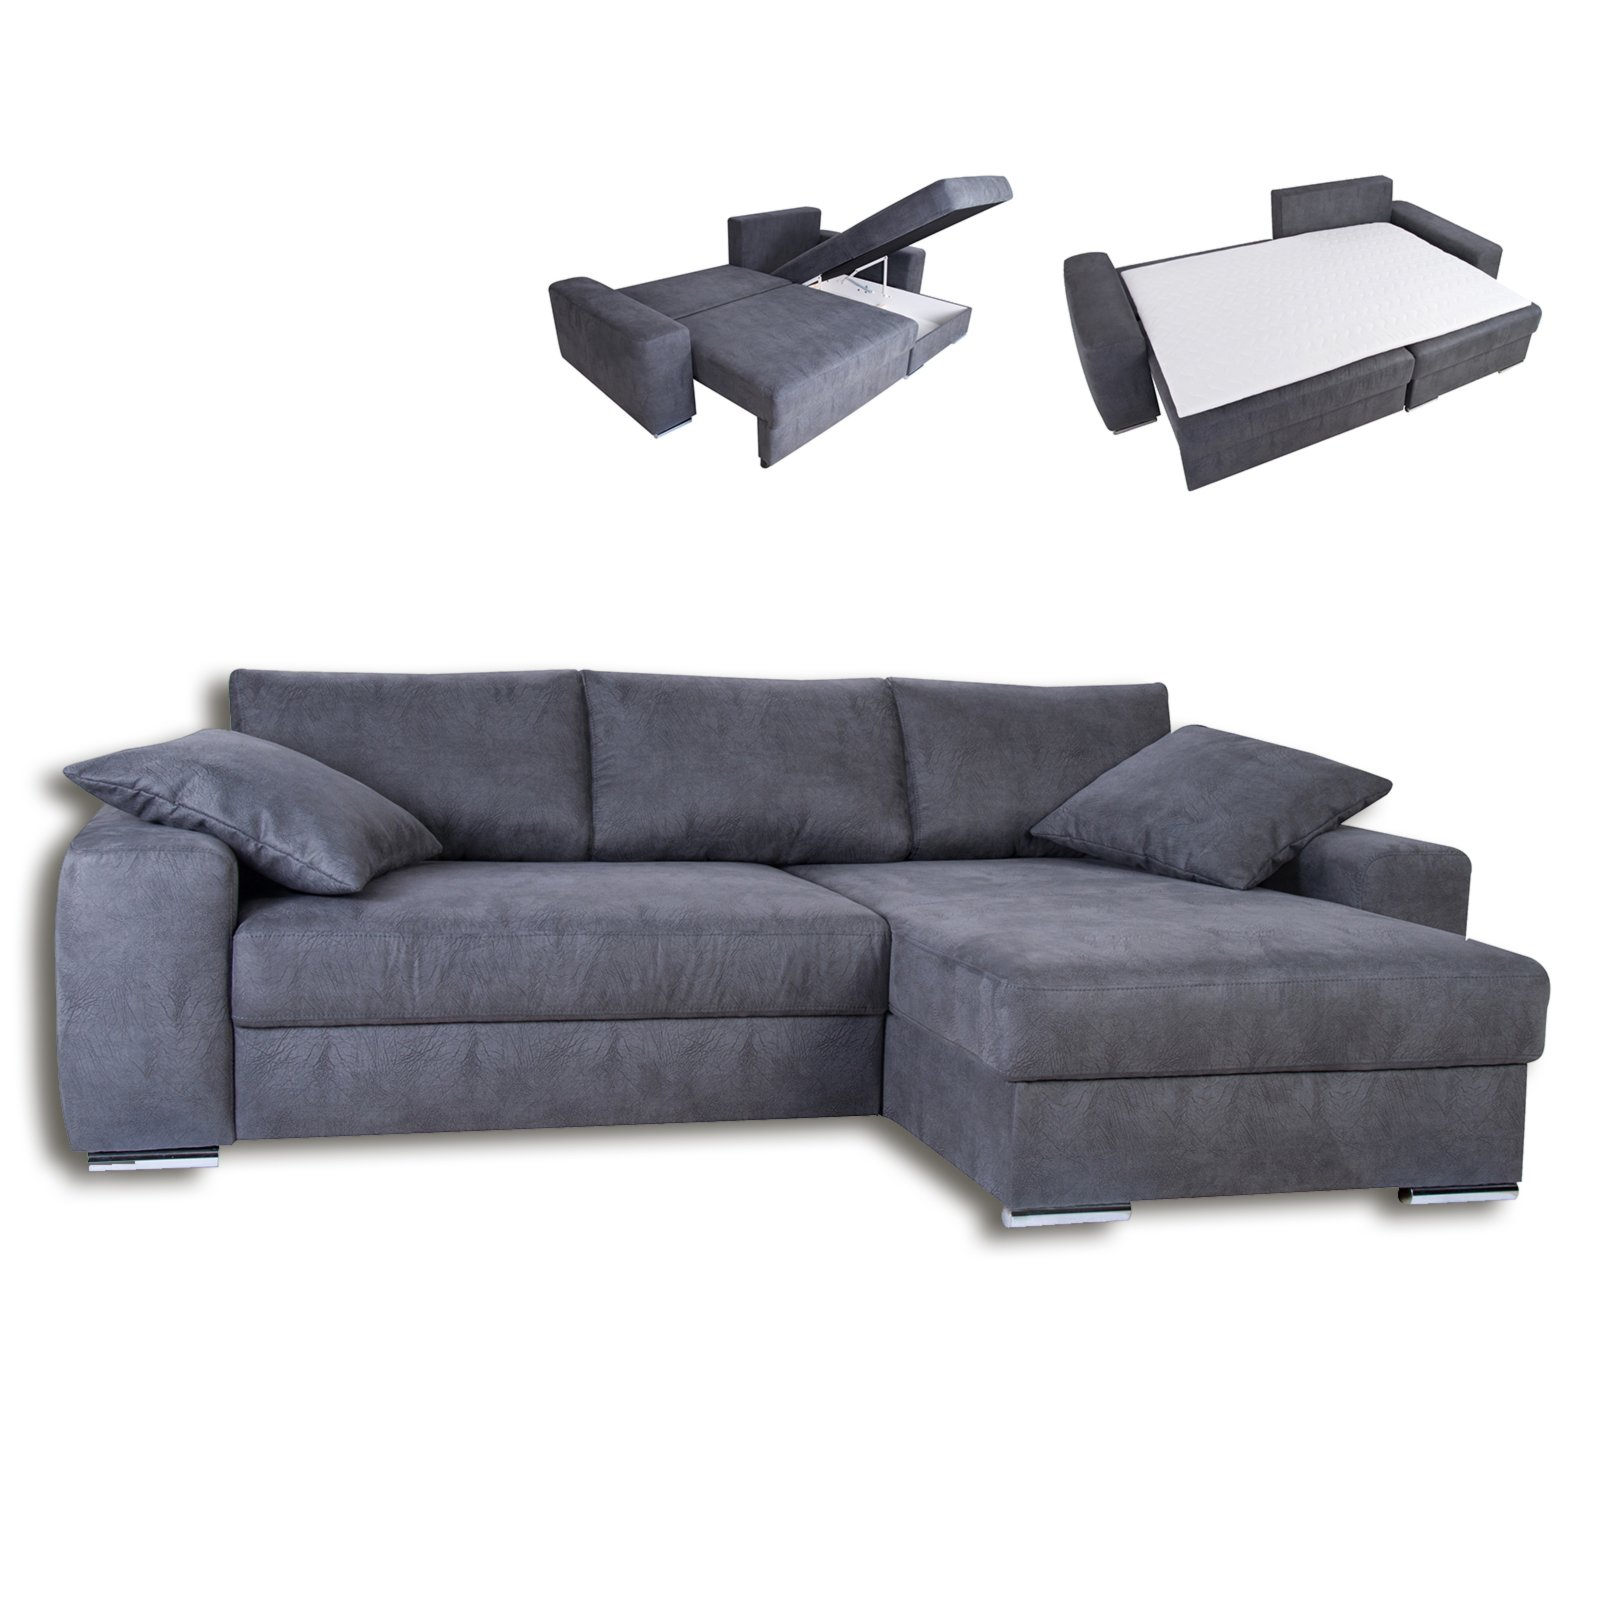 xxl sofa bei roller carprola for. Black Bedroom Furniture Sets. Home Design Ideas